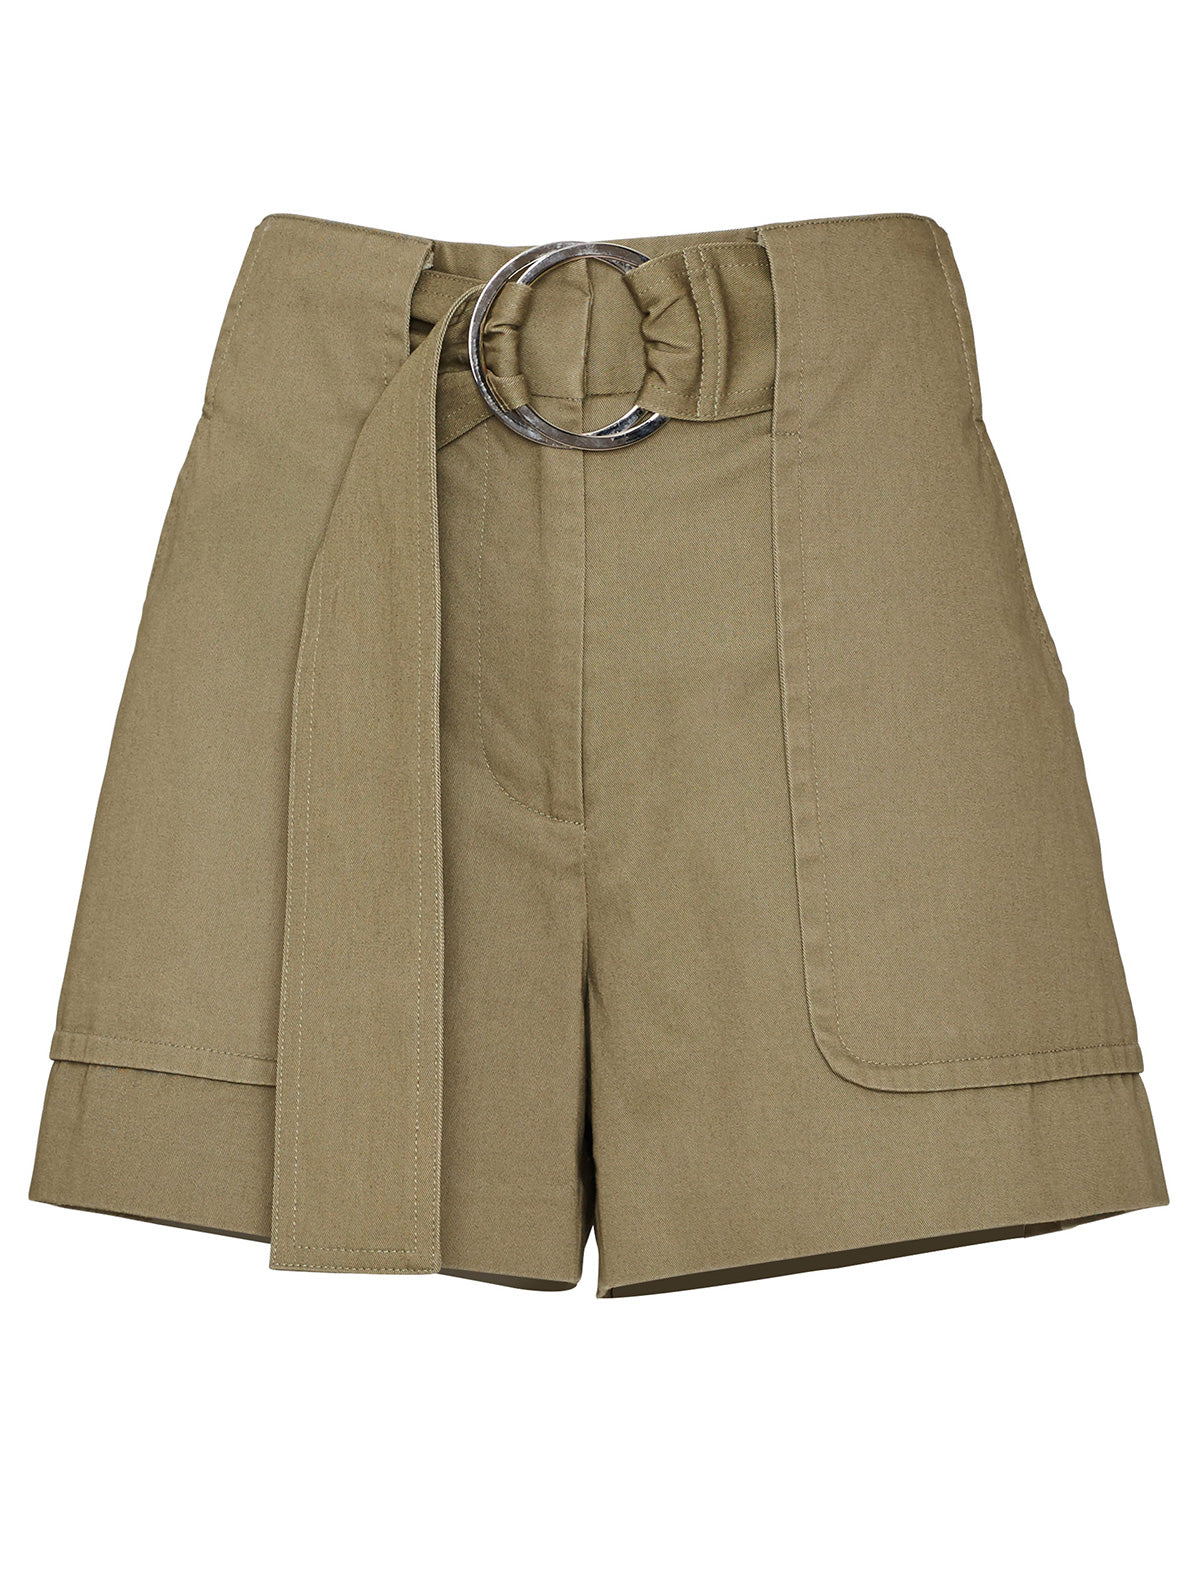 RIDING POCKET SHORTS, OLIVE